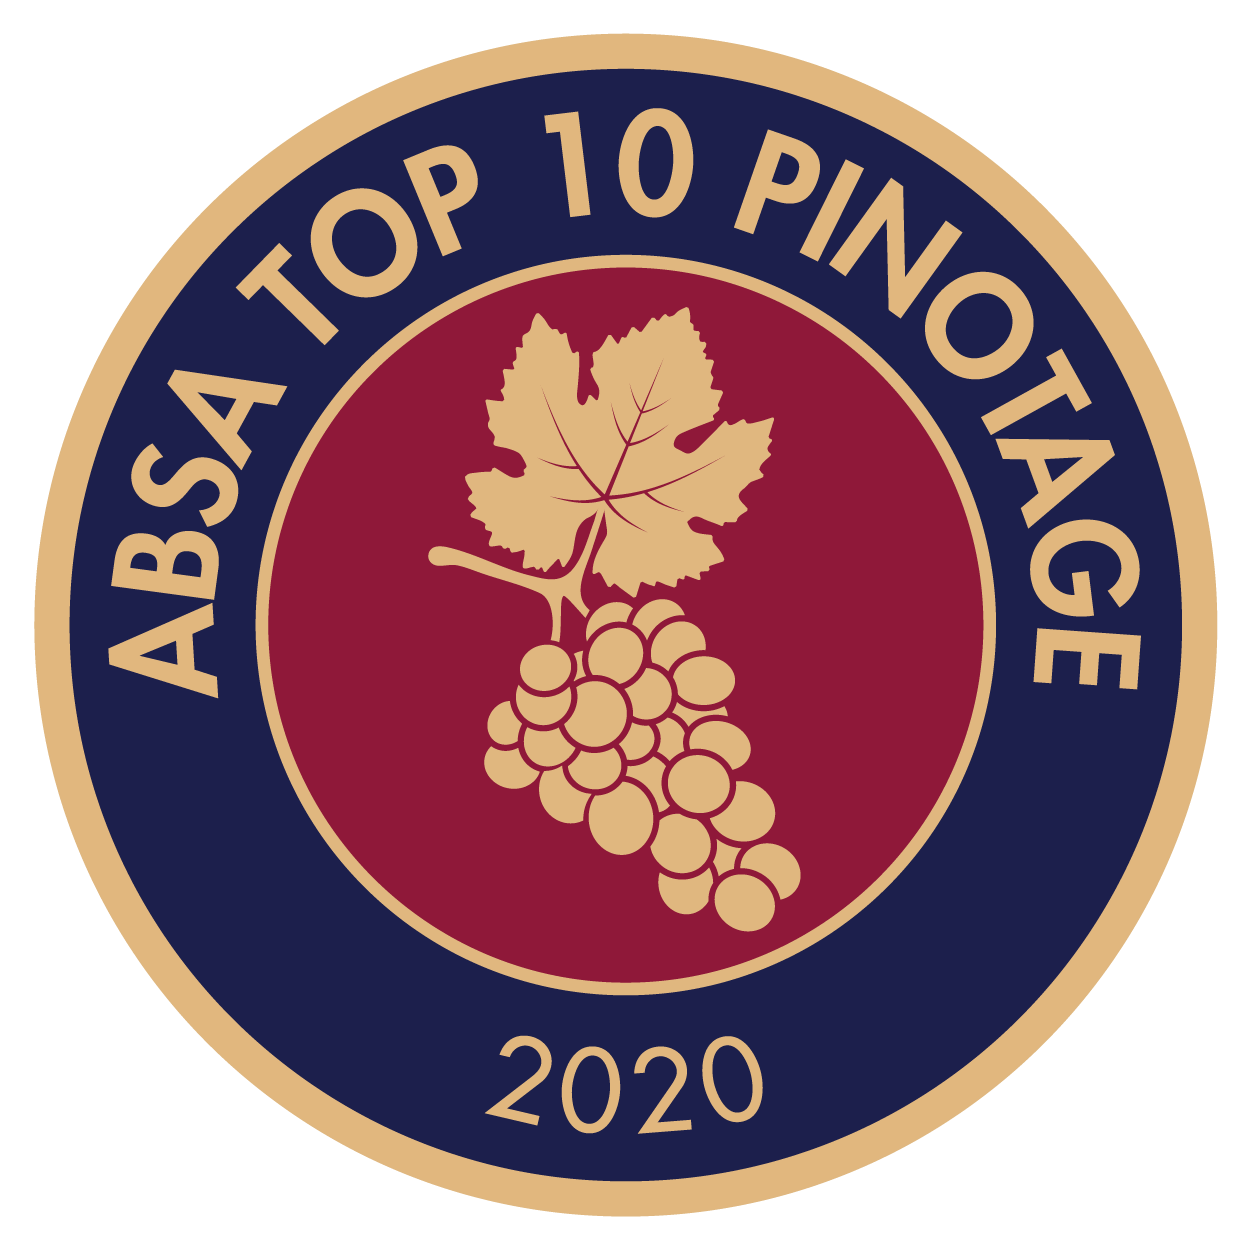 Entries open for the Absa Top 10 Pinotage competition photo